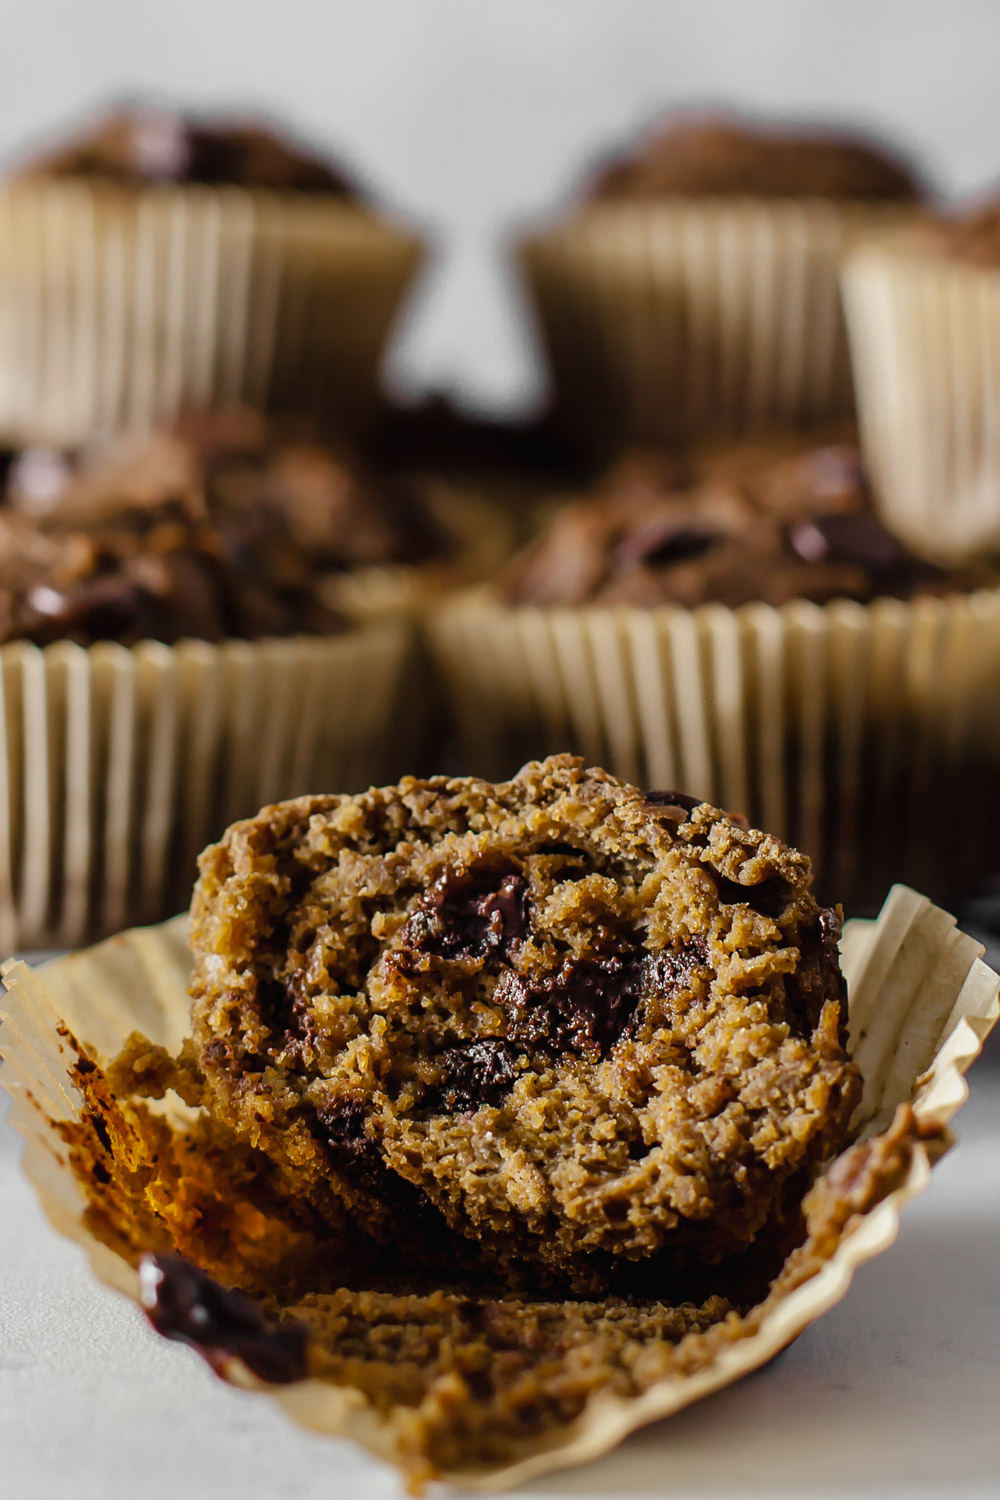 Plant Based Chocolate Chip Blender Muffins (oil-free) How to Get Your Partner and Kids on Board with Eating Plant Based